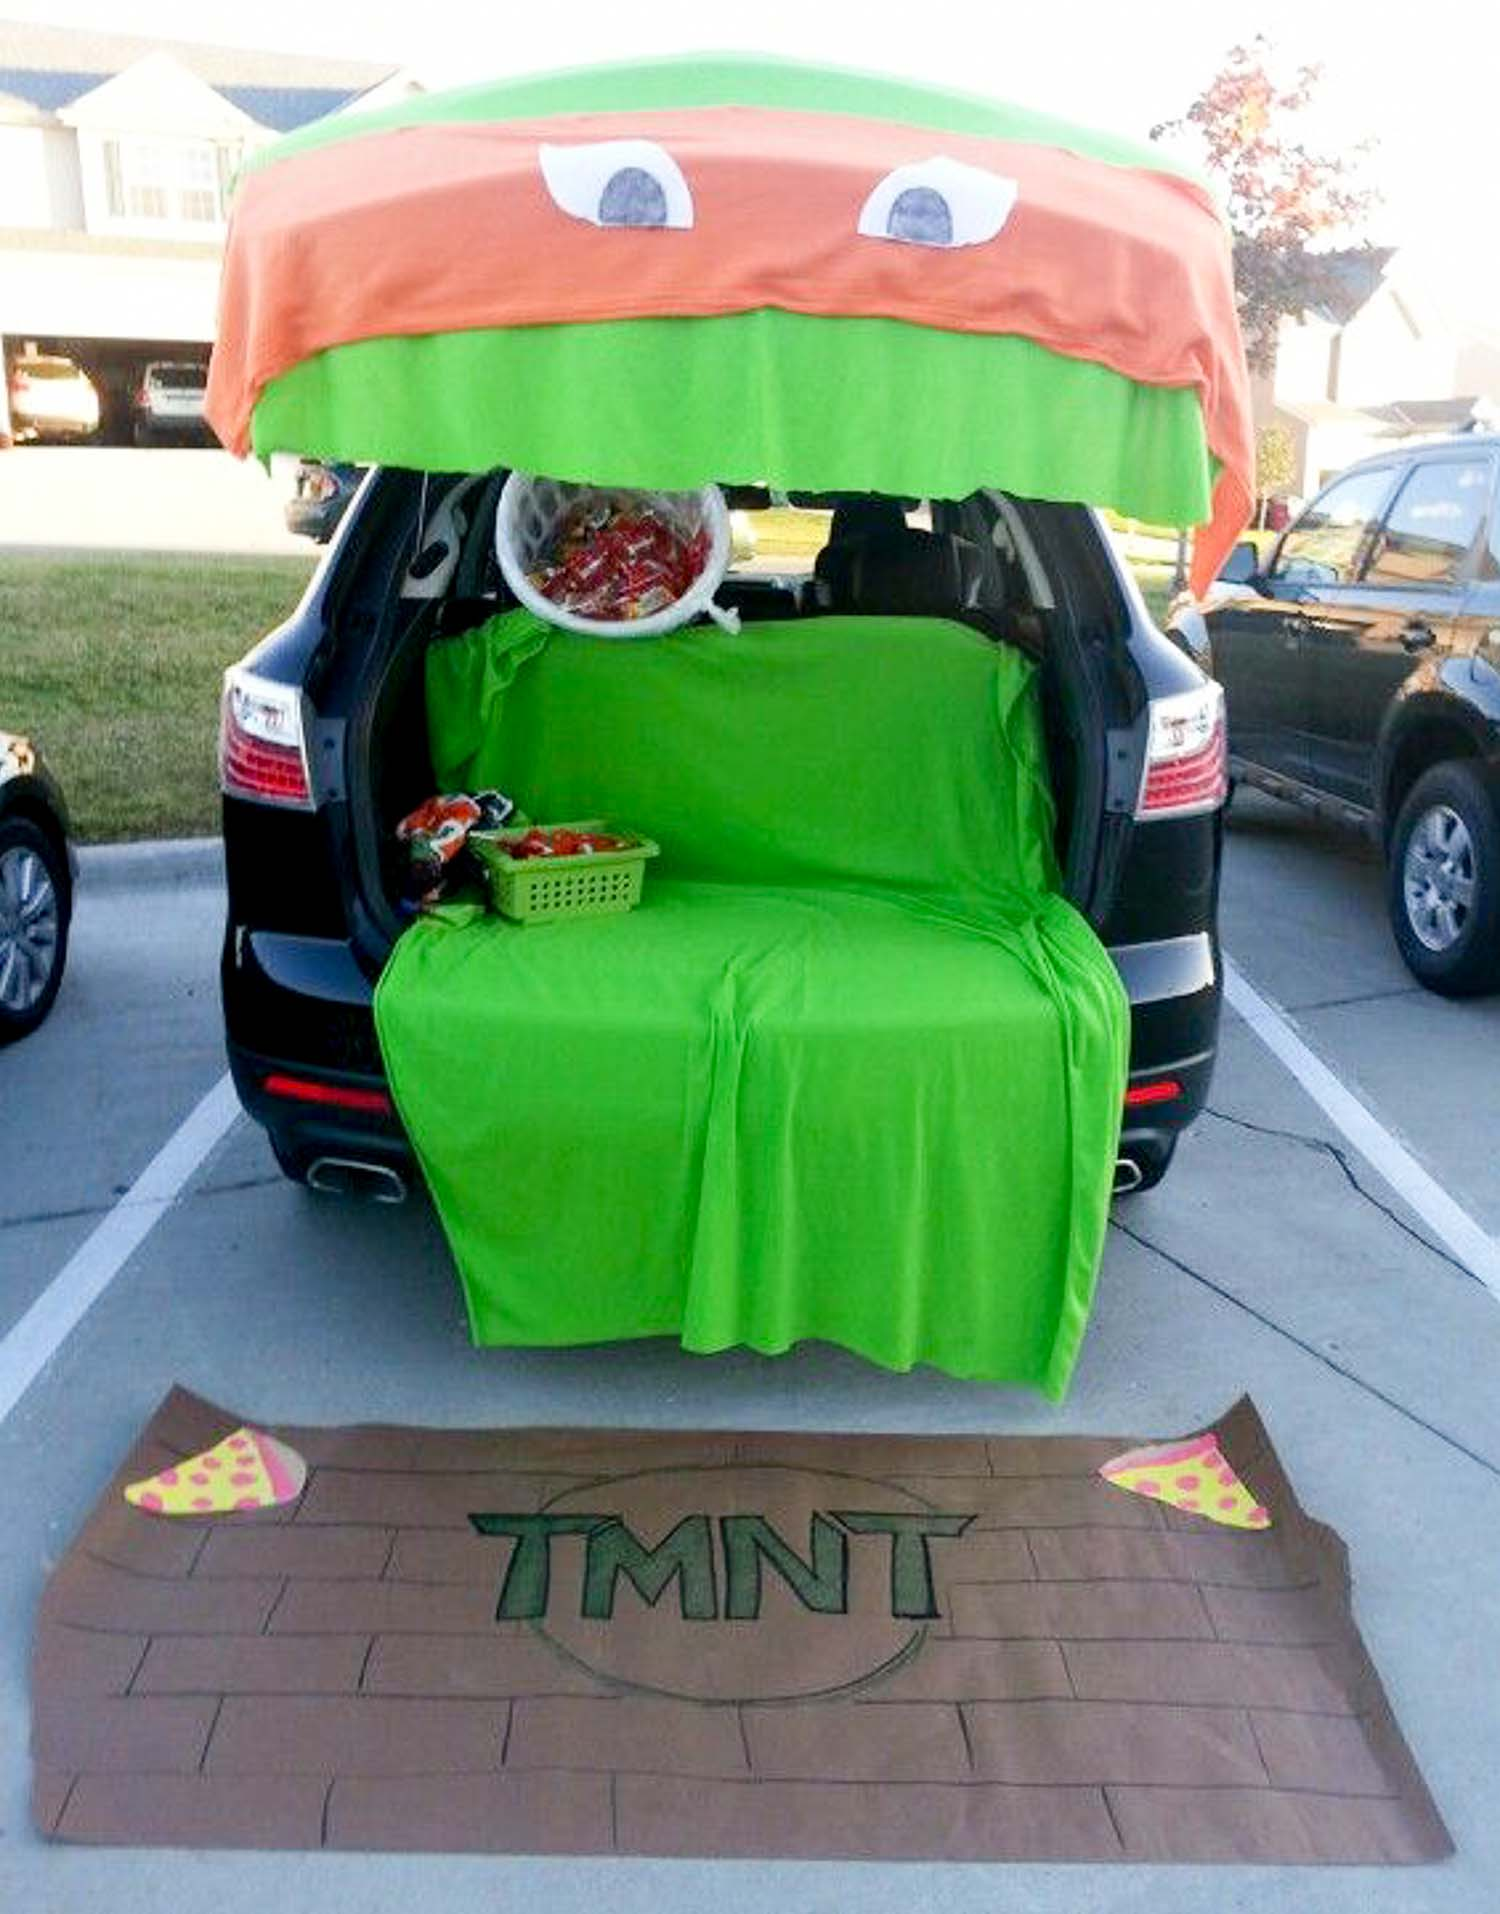 A teenage mutant ninja turtle cover over an open SUV trunk with a green blanket in it and a brown carpet with TMNT and pizzas on it.